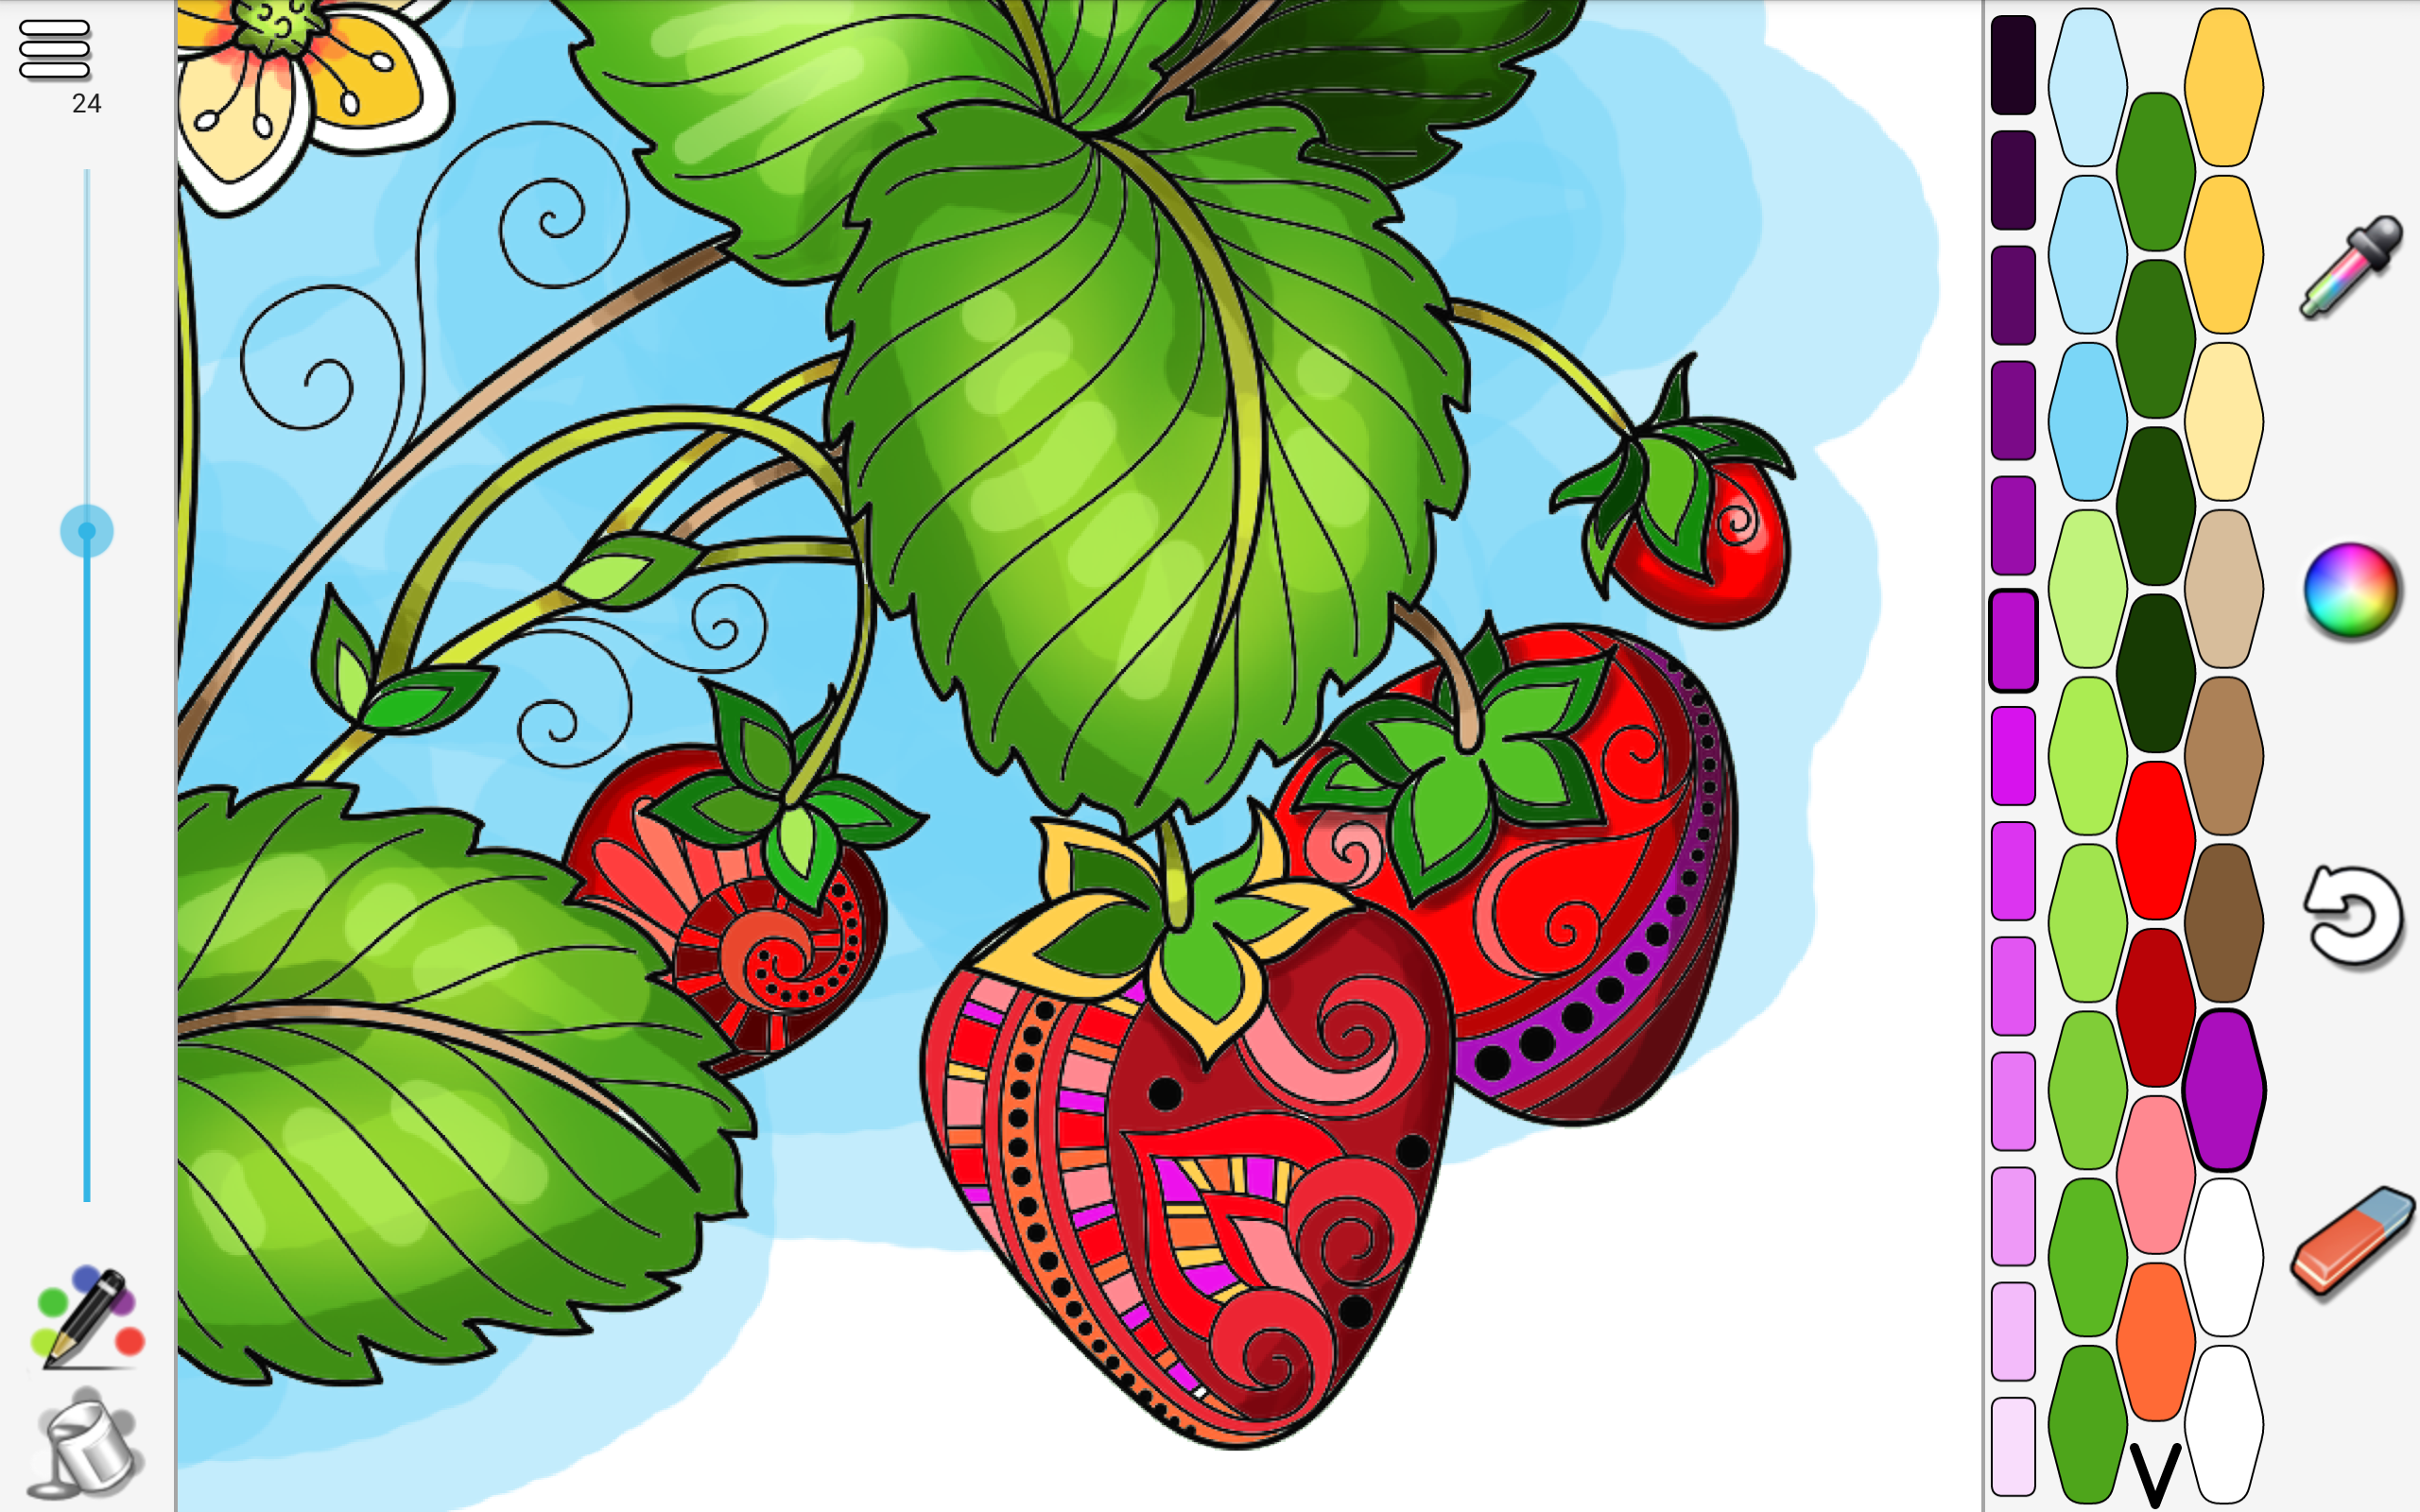 Amazon.com: Coloring: Appstore for Android